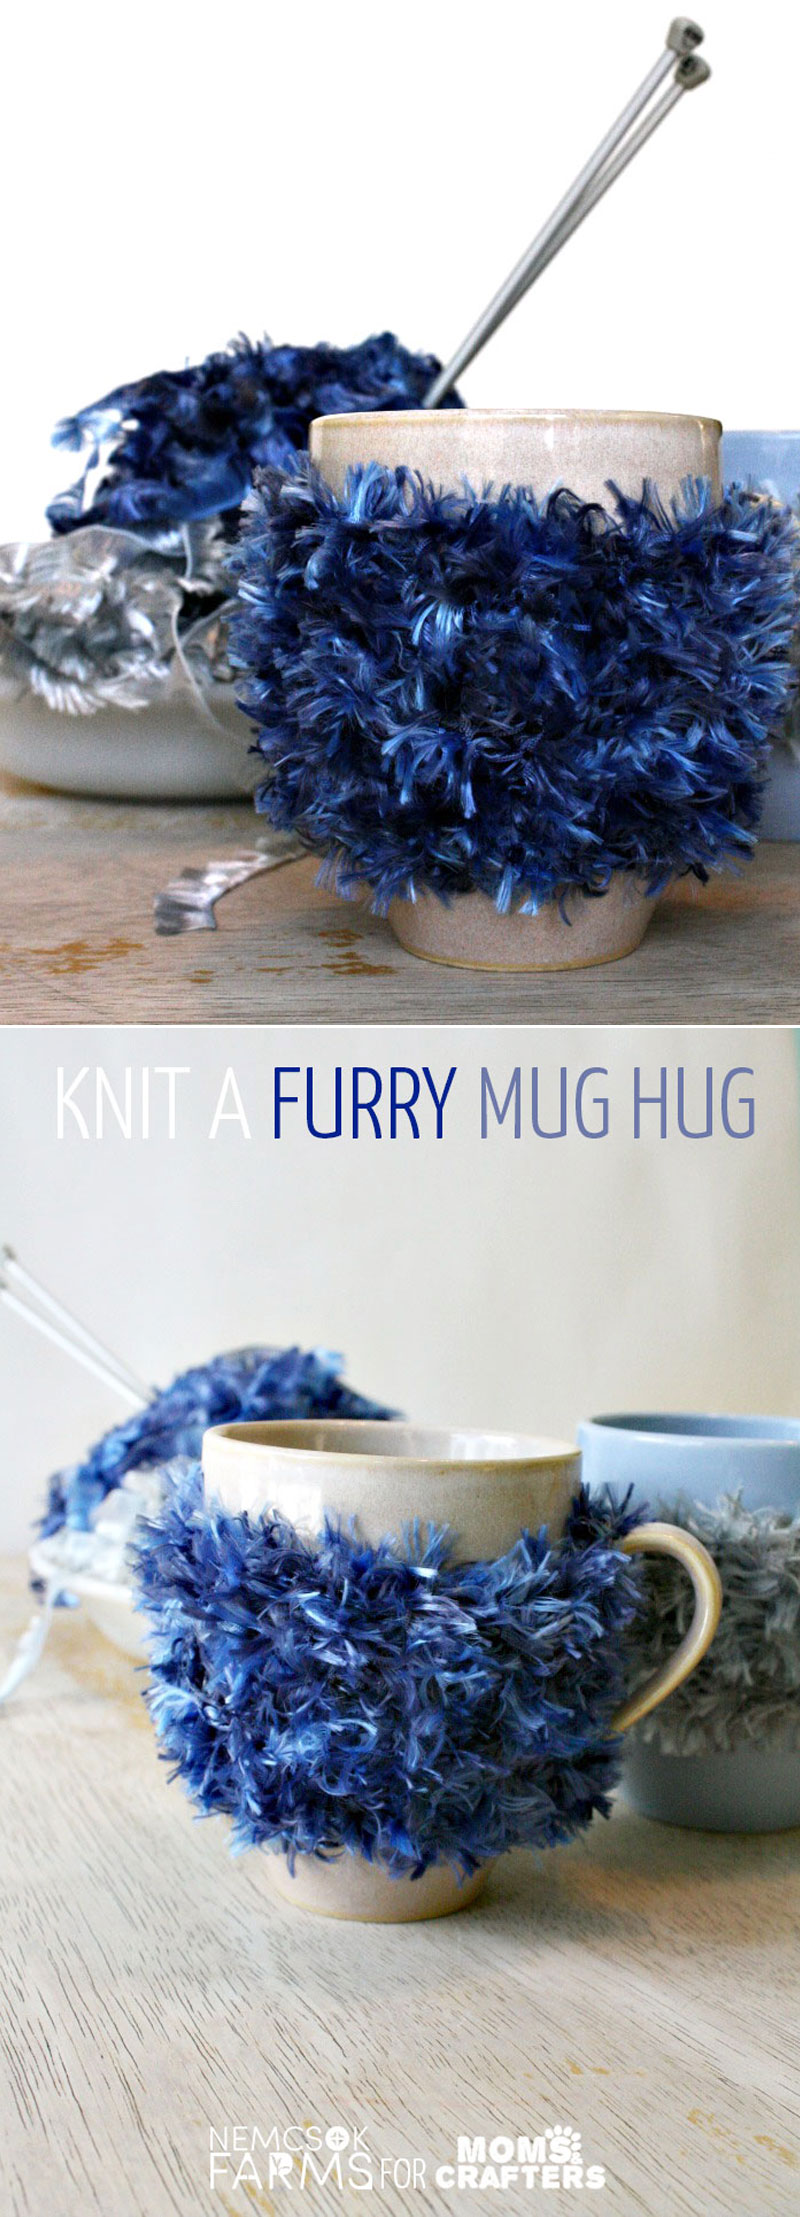 Knit a fun furry mug hug - this easy DIY mug cozy tutorial is the perfect beginner knitting project for teens and tweens and includes a free knitting pattern!